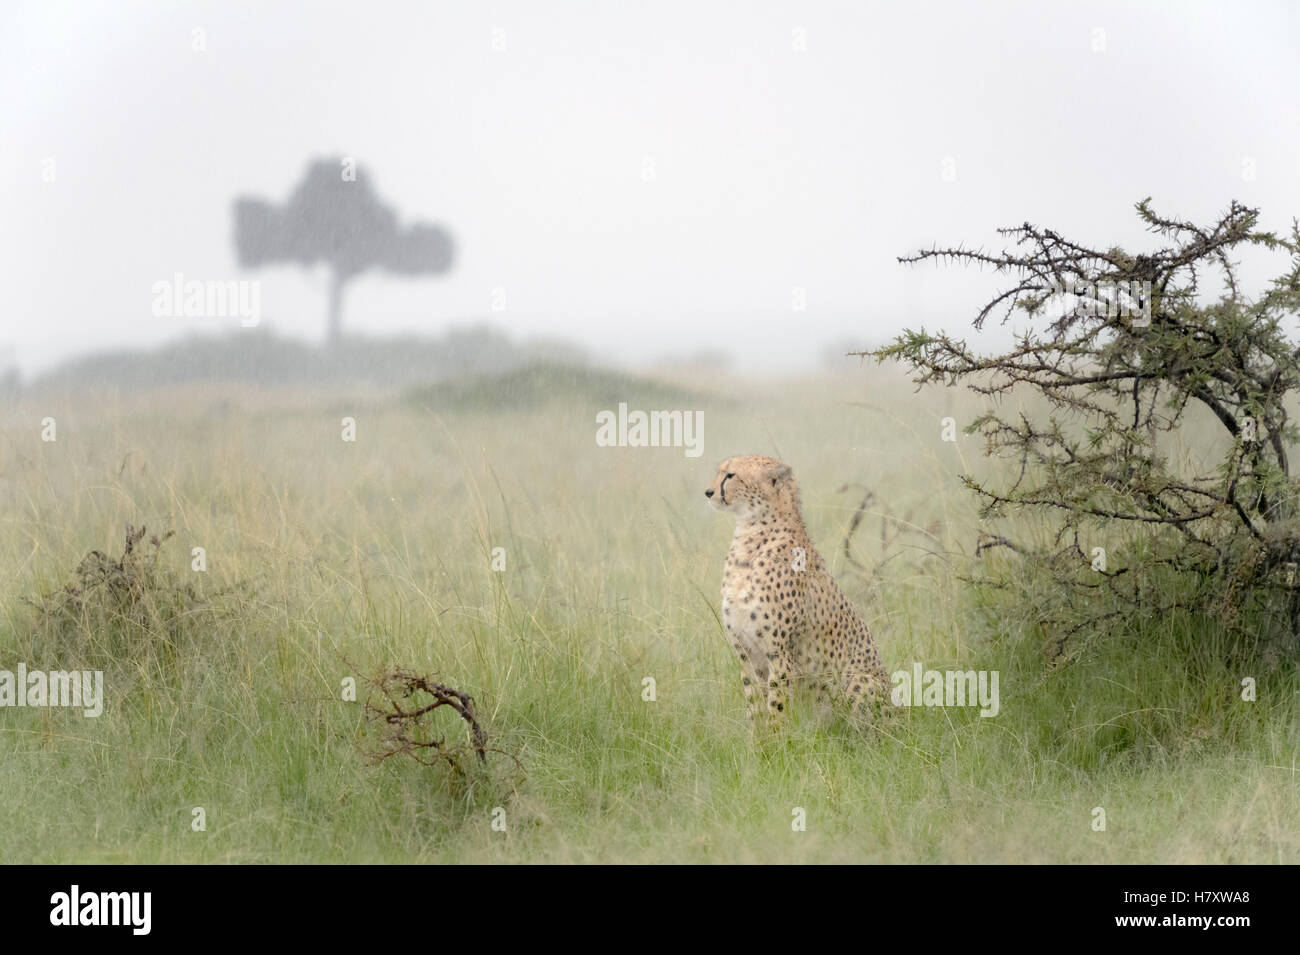 Cheetah (Acinonix jubatus) sitting on savanna during rainfall, Maasai Mara National Reserve, Kenya - Stock Image